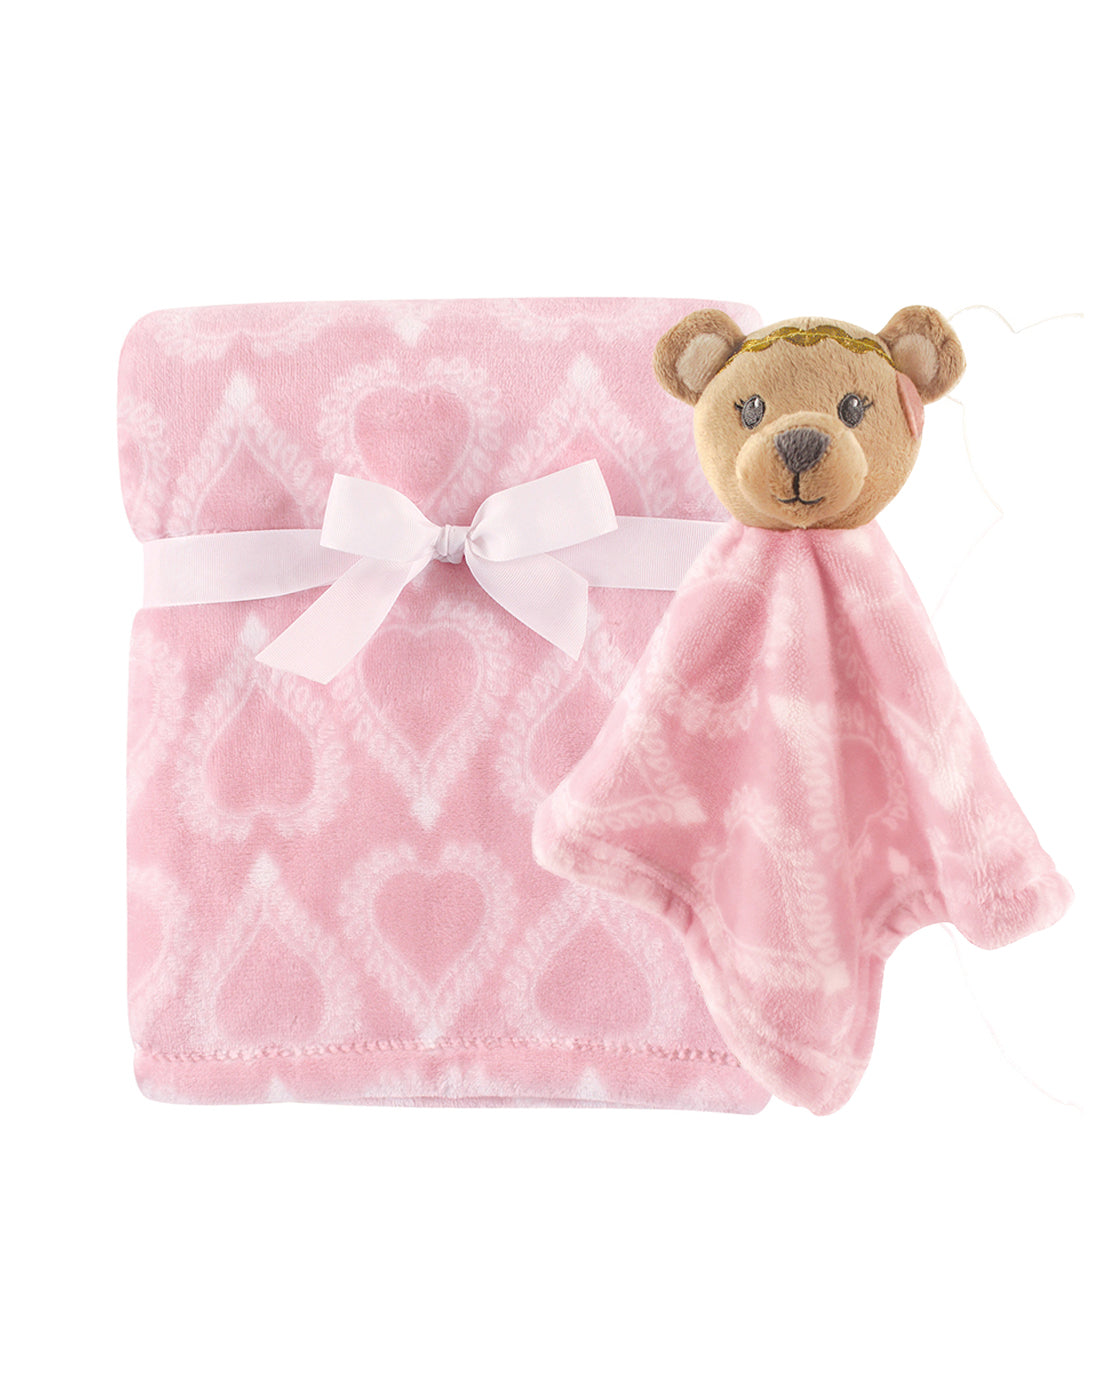 Baby Bear Security Blanket Set